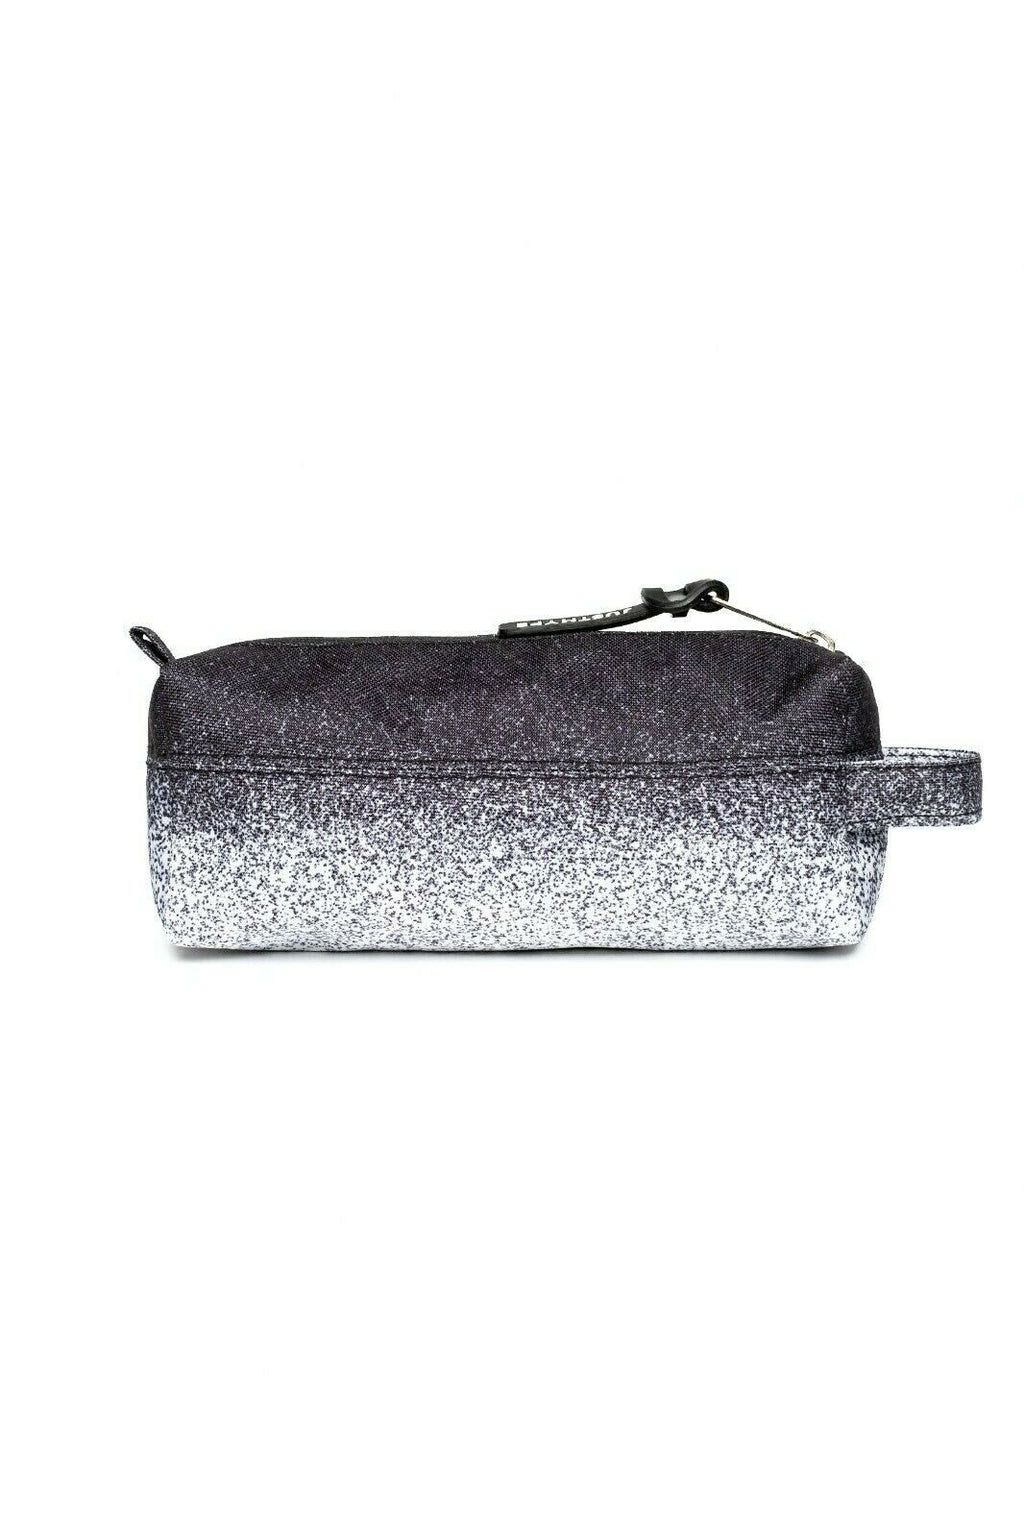 White/Black Speckle Fade Pencil Case